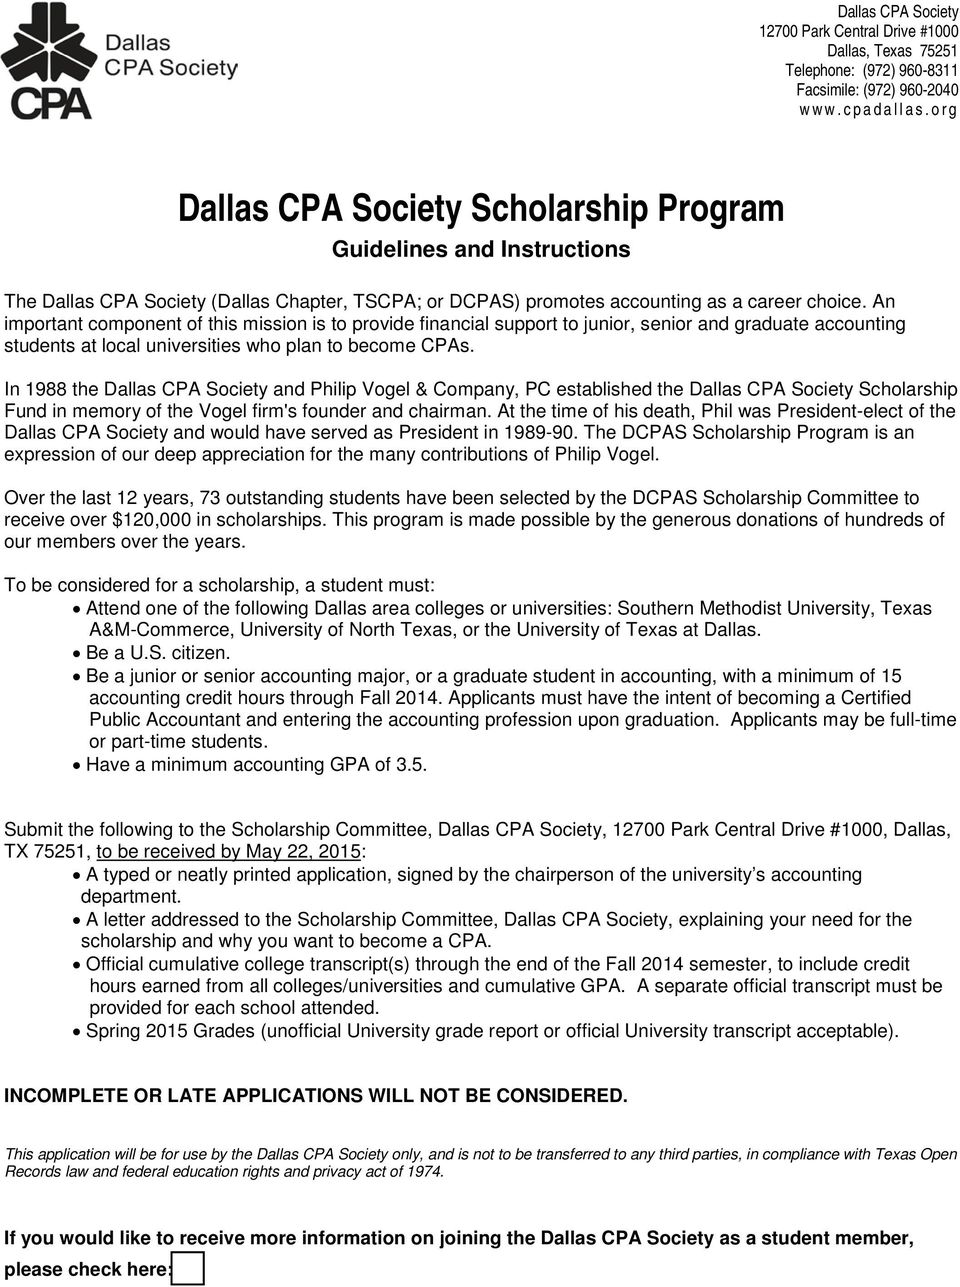 An important component of this mission is to provide financial support to junior, senior and graduate accounting students at local universities who plan to become CPAs.